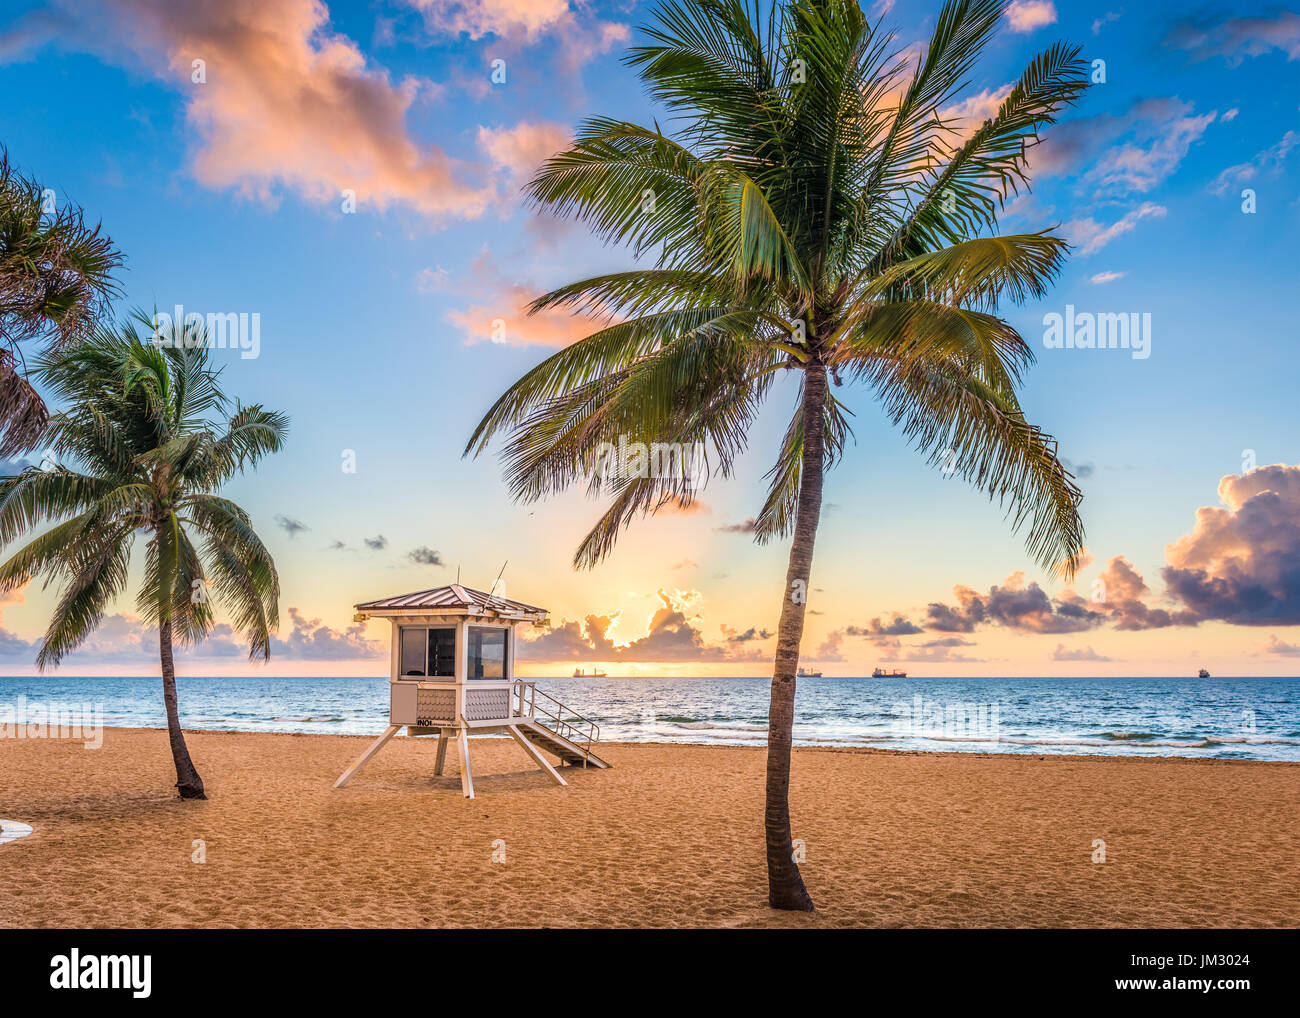 Fort Lauderdale, Florida, USA at the beach. Stock Photo